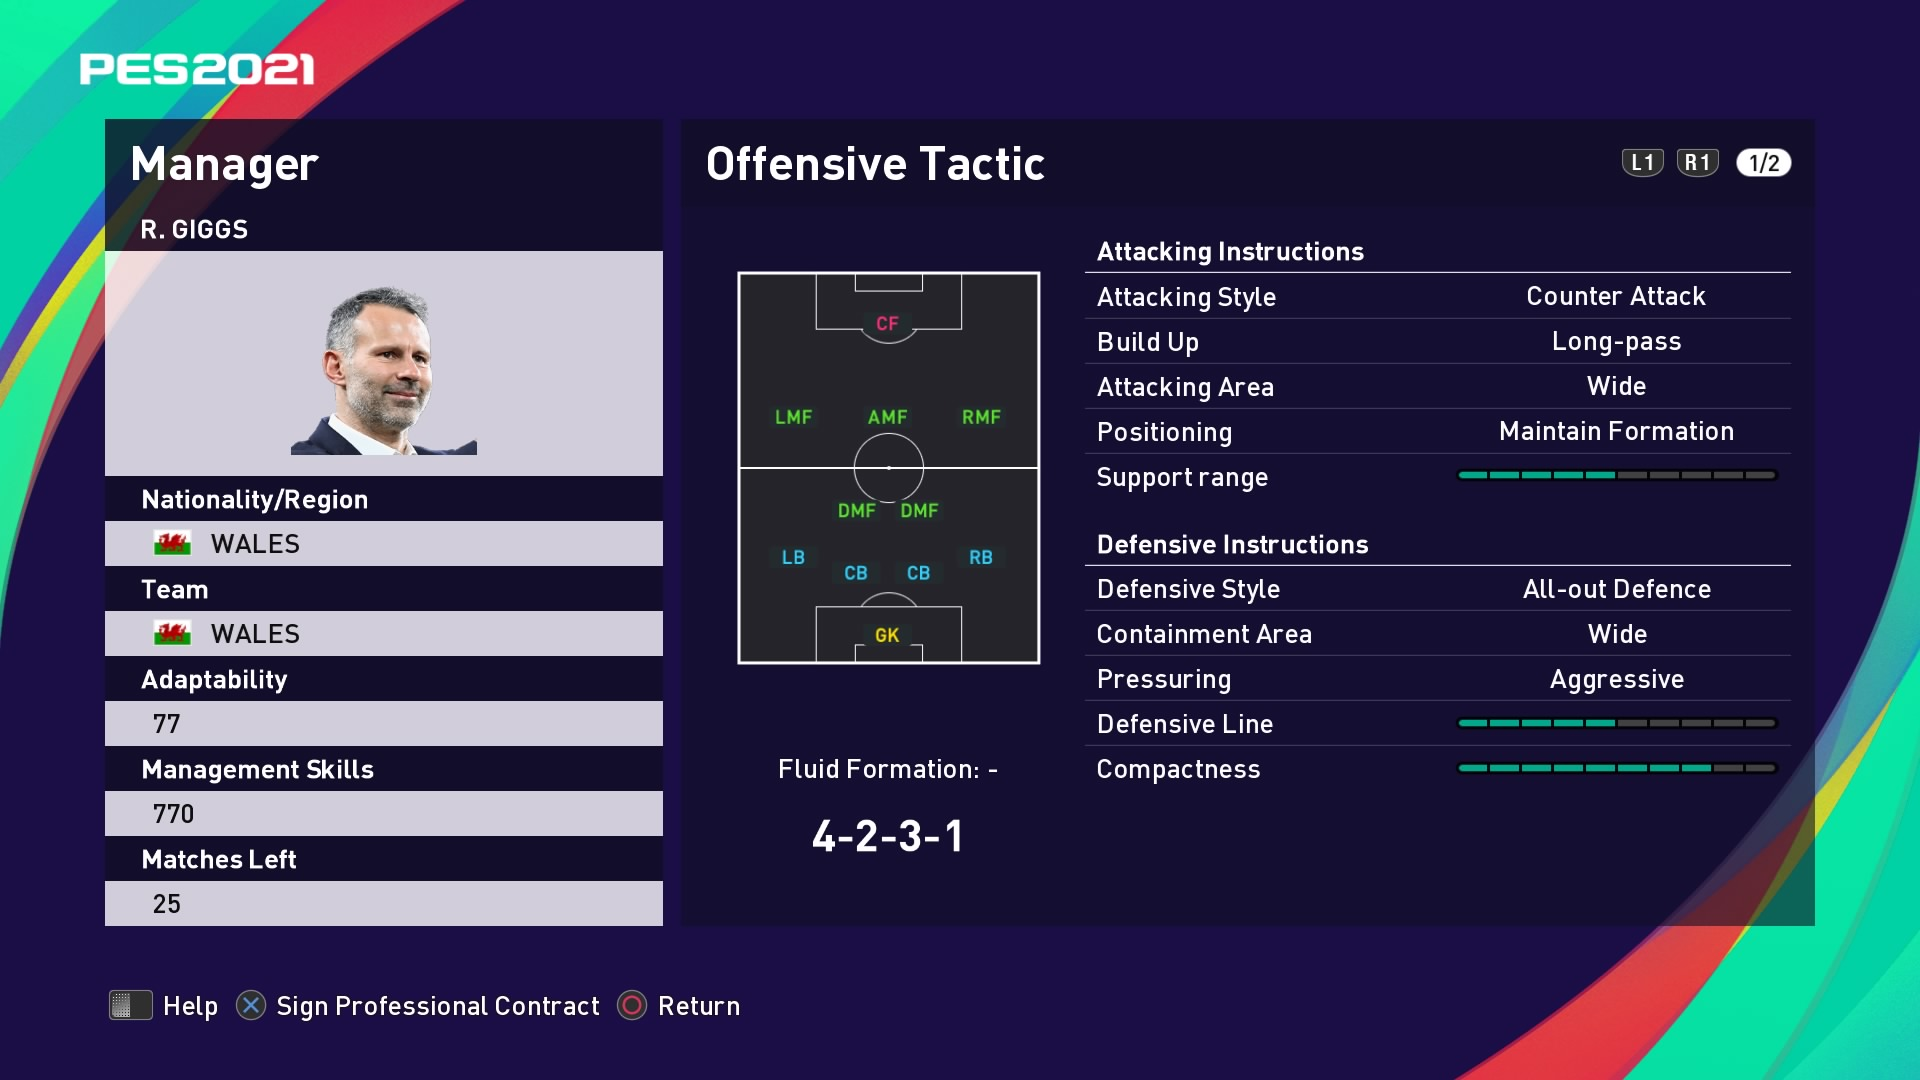 R. Giggs (Ryan Giggs) Offensive Tactic in PES 2021 myClub